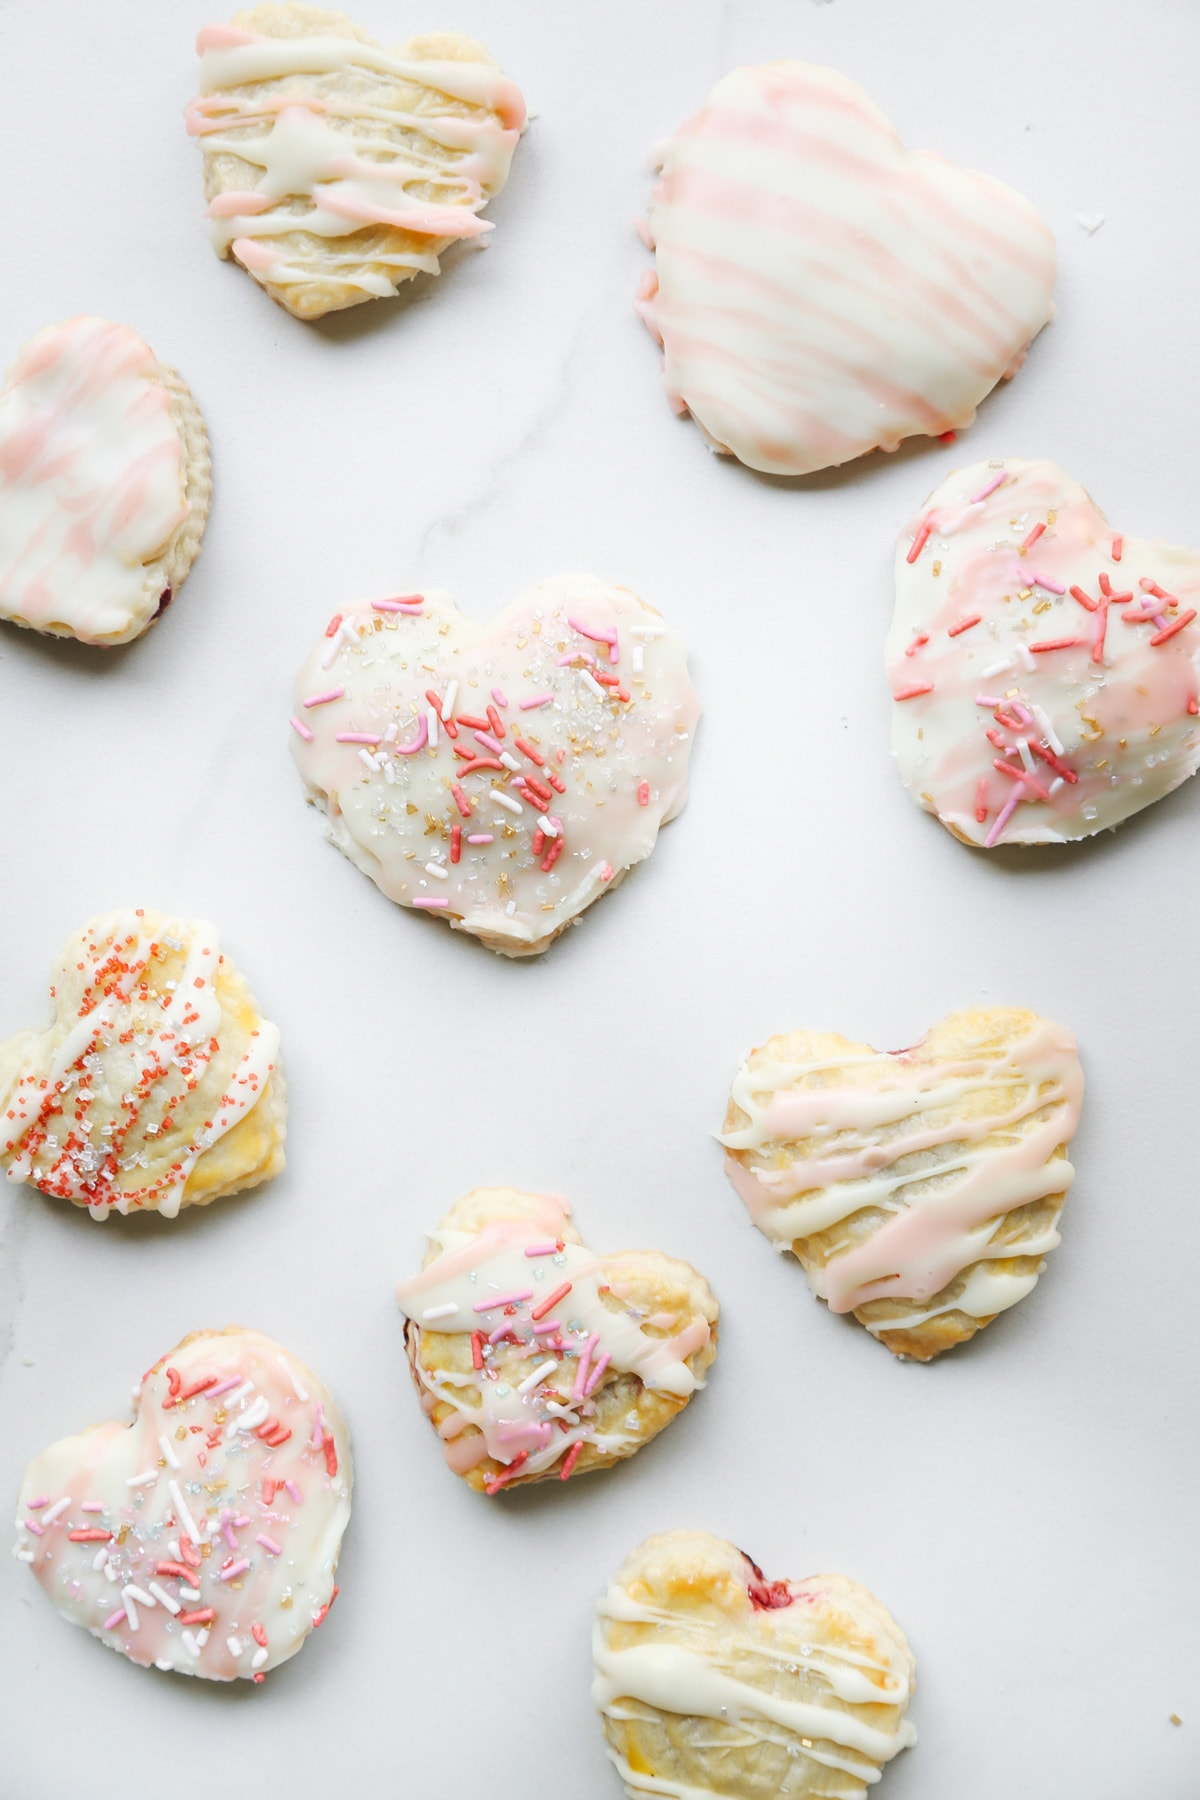 Raspberry Heart Shaped Pop Tarts Recipe by top Houston lifestyle blogger Ashley Rose of Sugar and Cloth